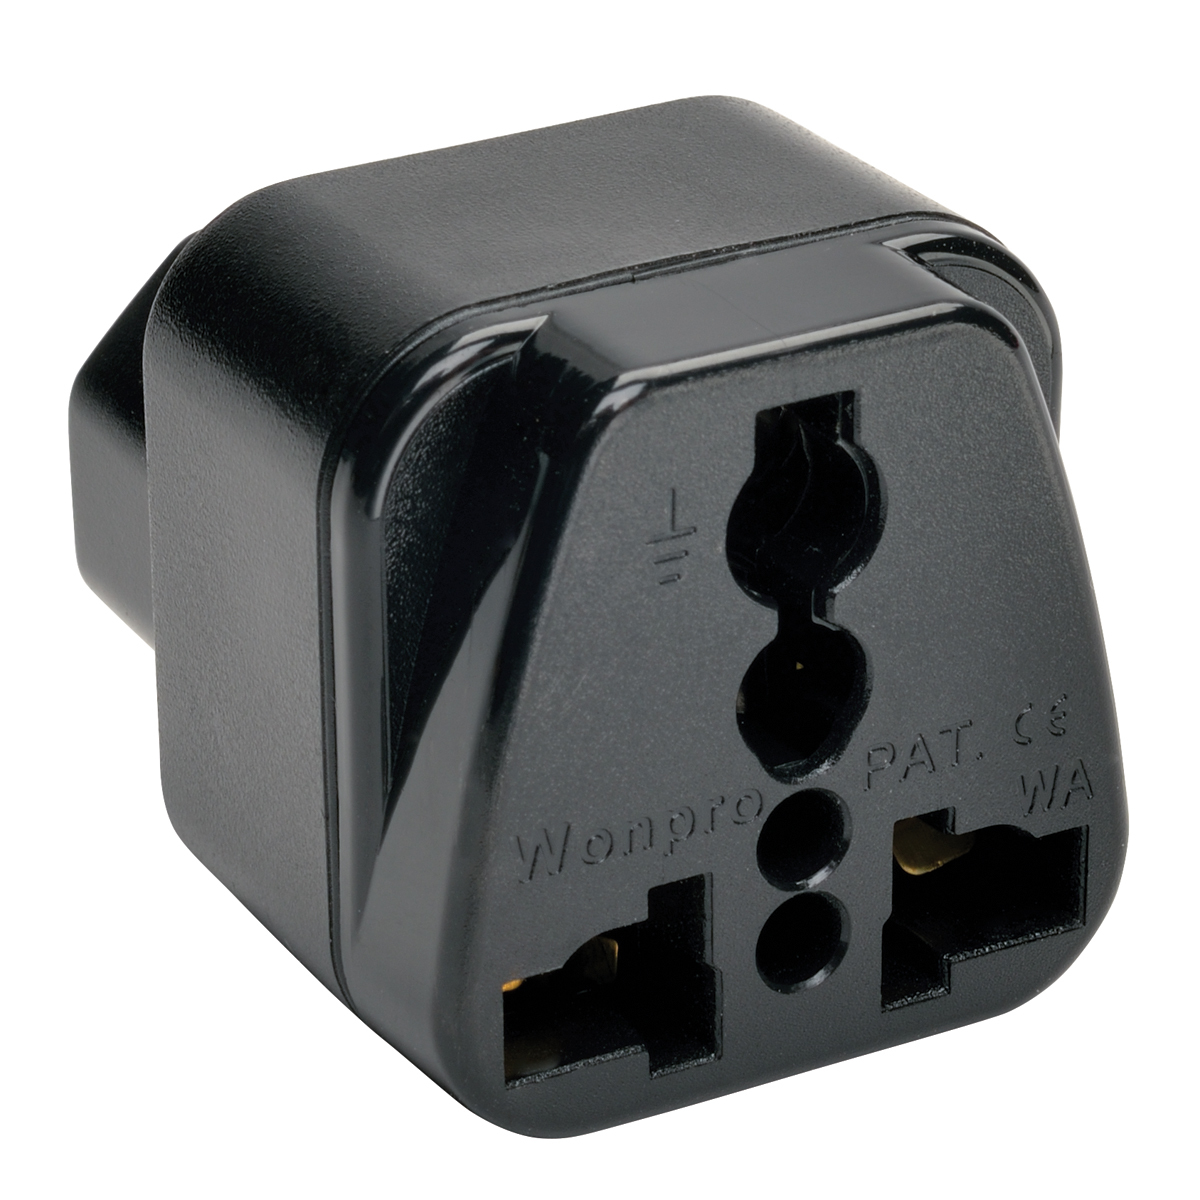 Tripplite - Other Products       International Power Plug            Adapter                             Uniplugint